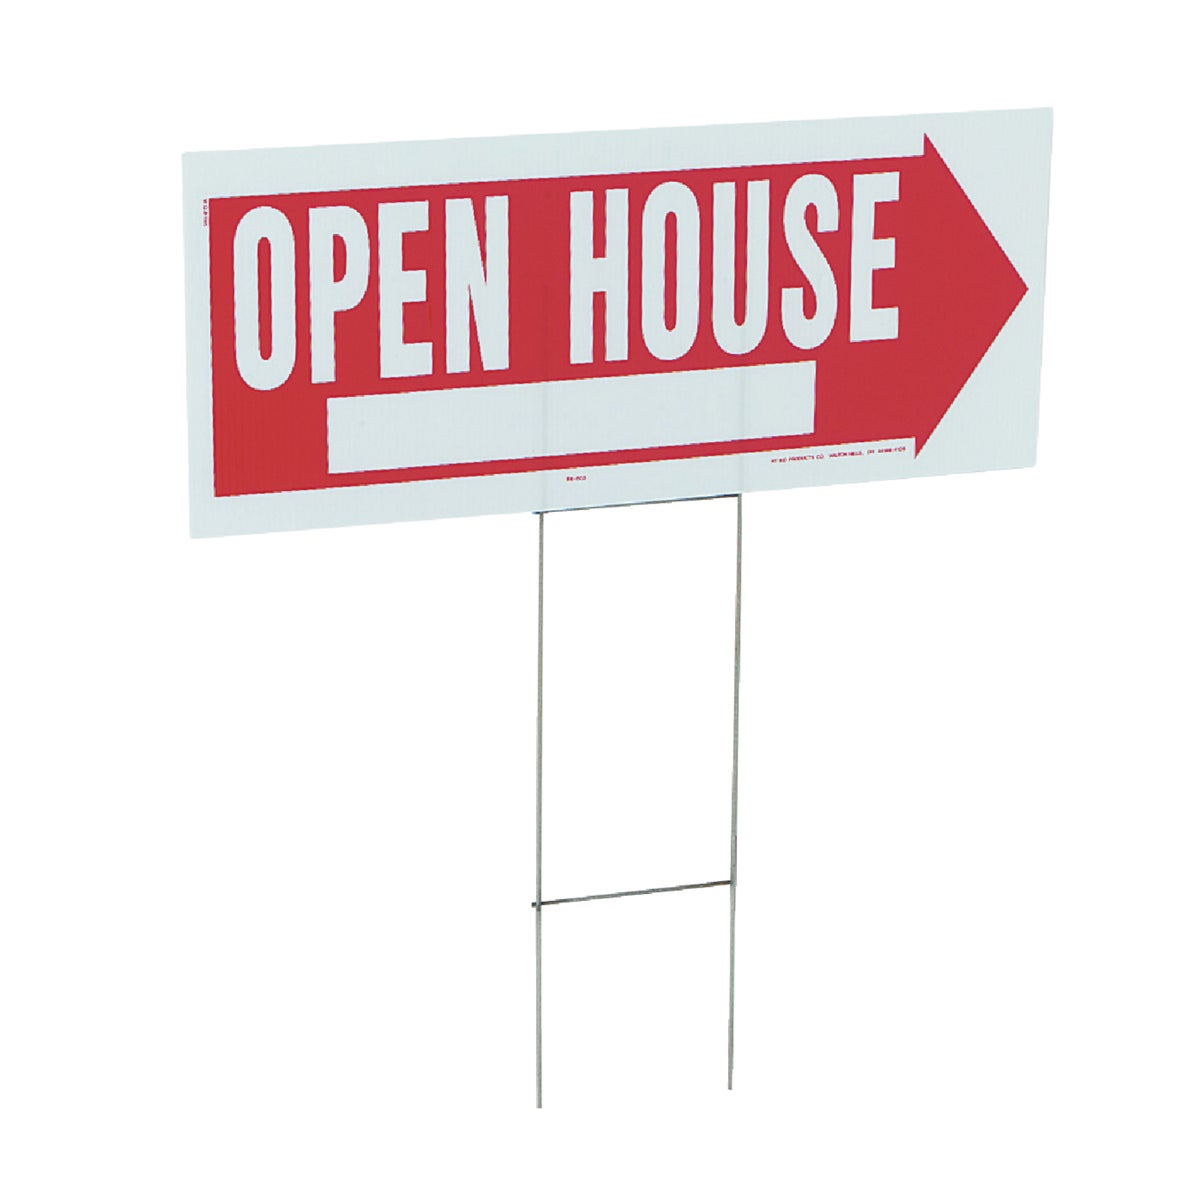 10X24 OPEN HOUSE SIGN - RS-803 by Hy Ko Prods Co